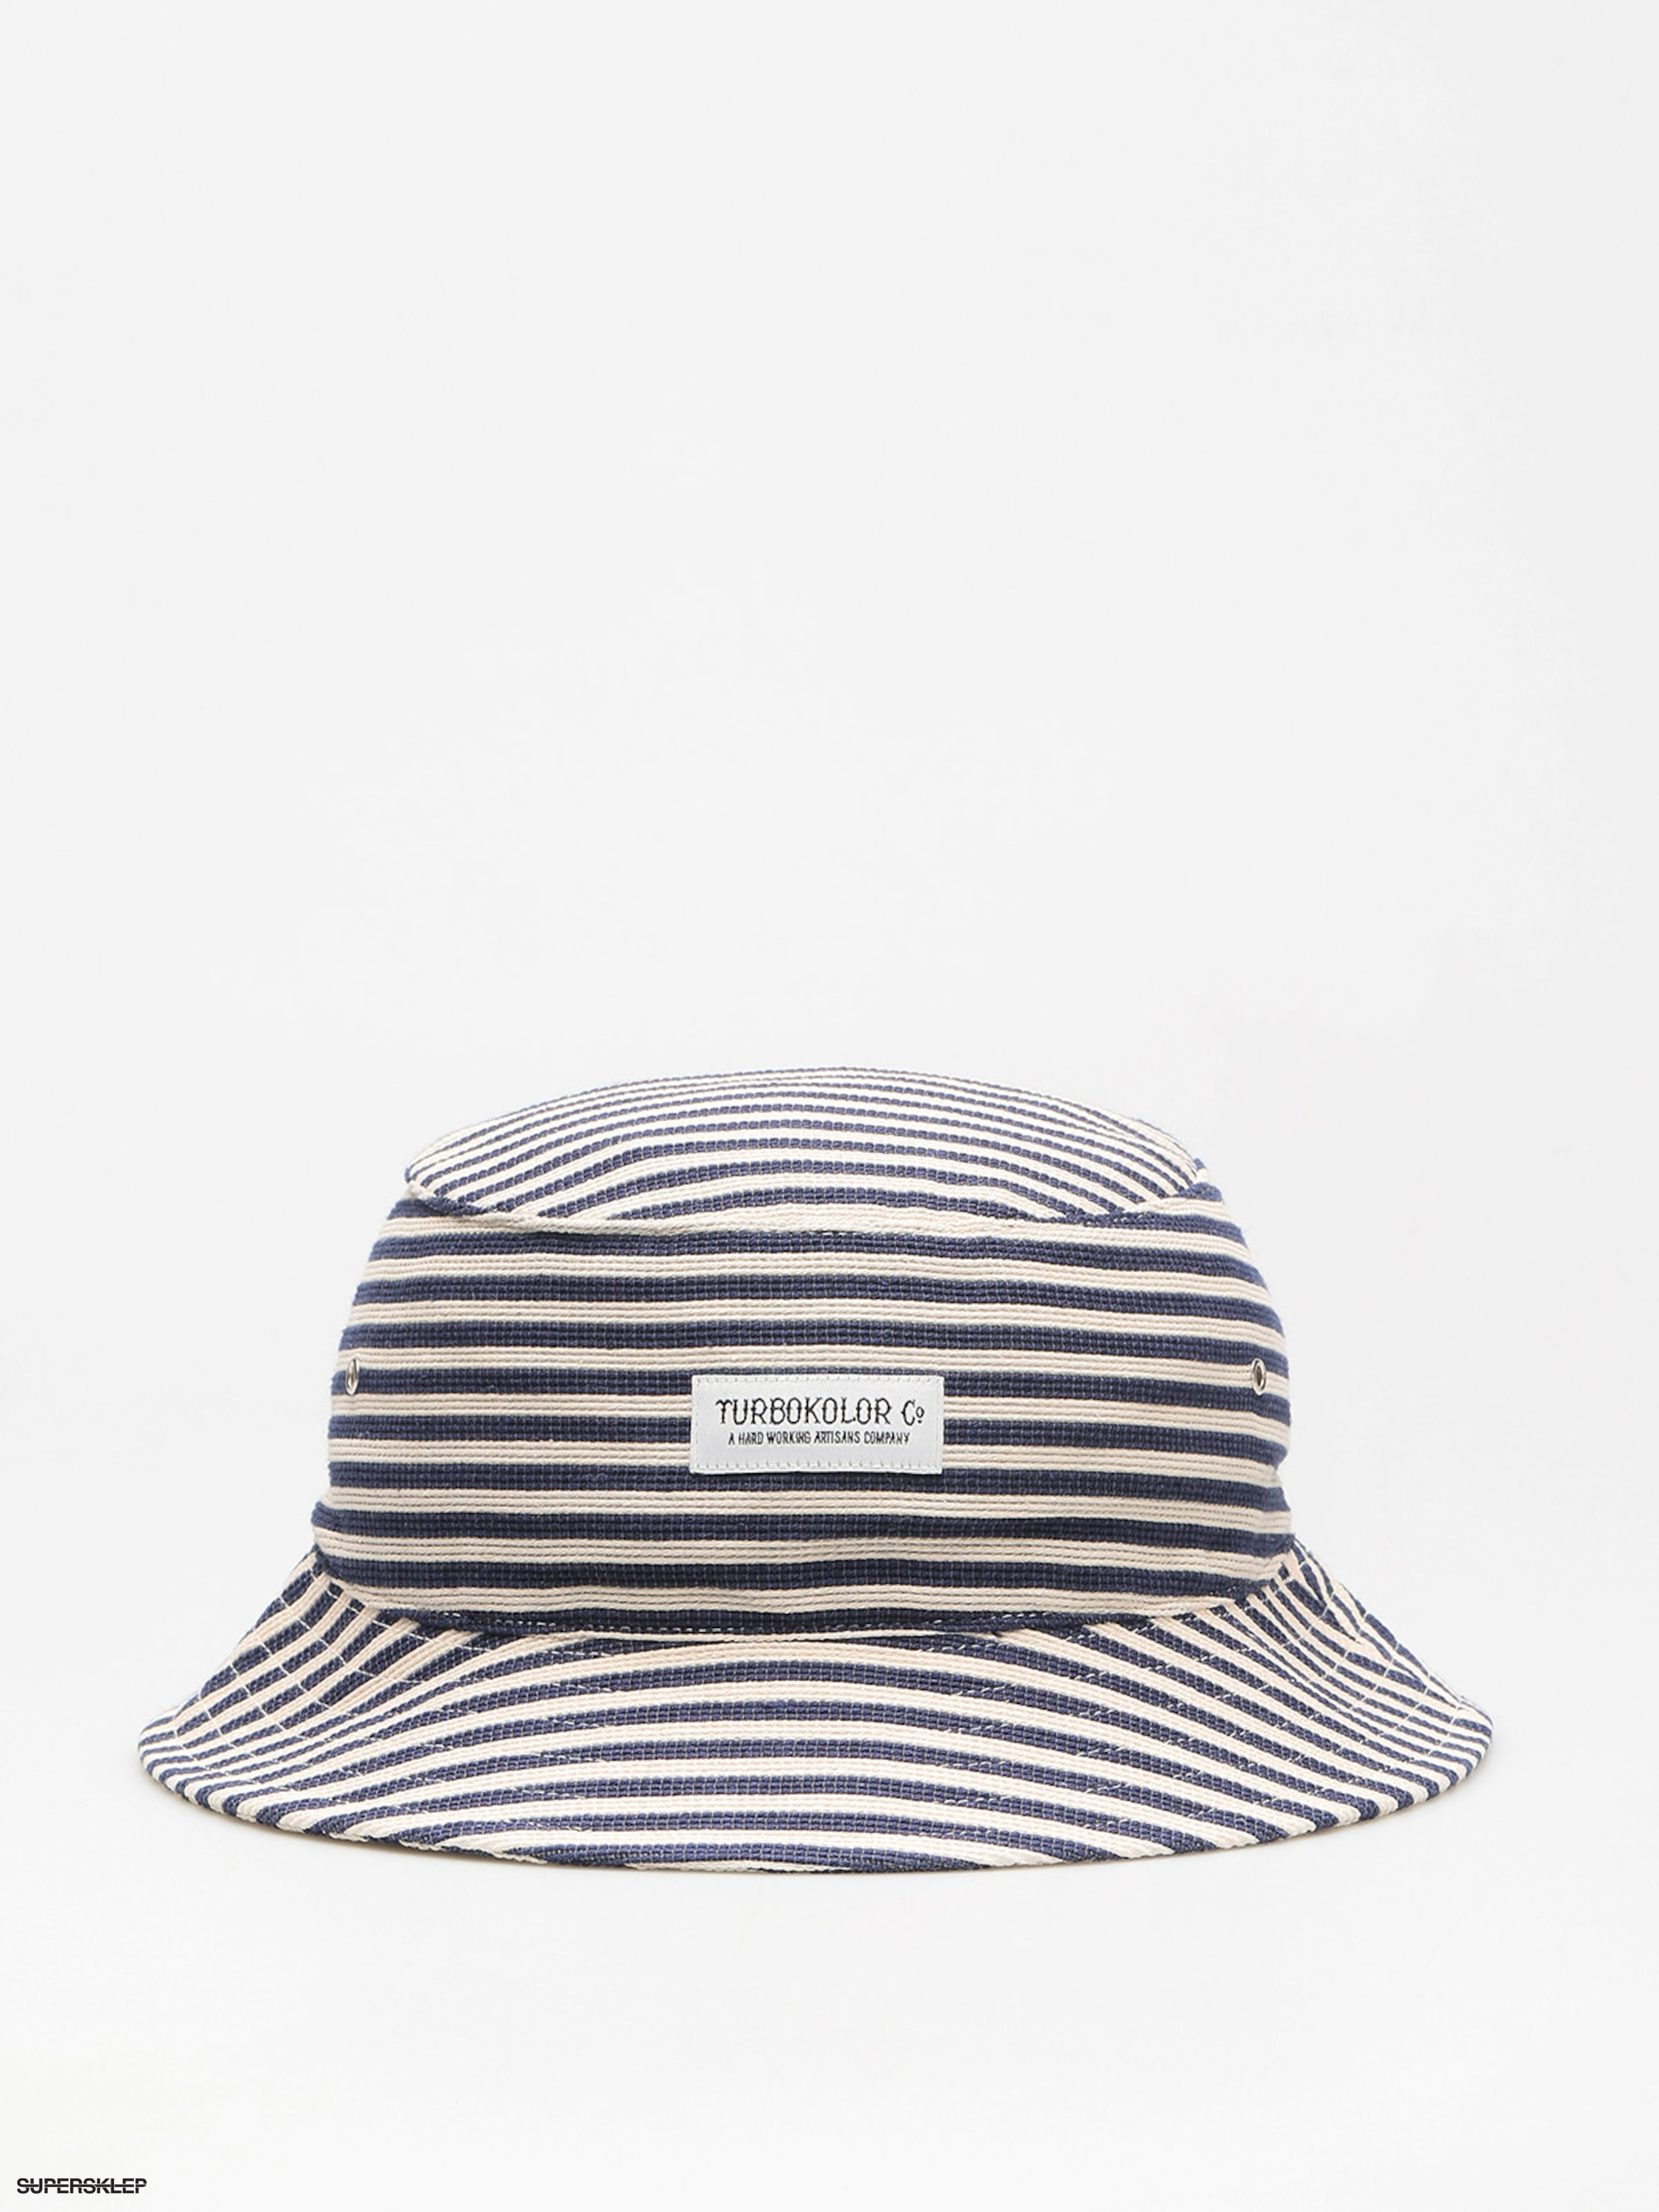 Klobouk Turbokolor Bucket (stripes)